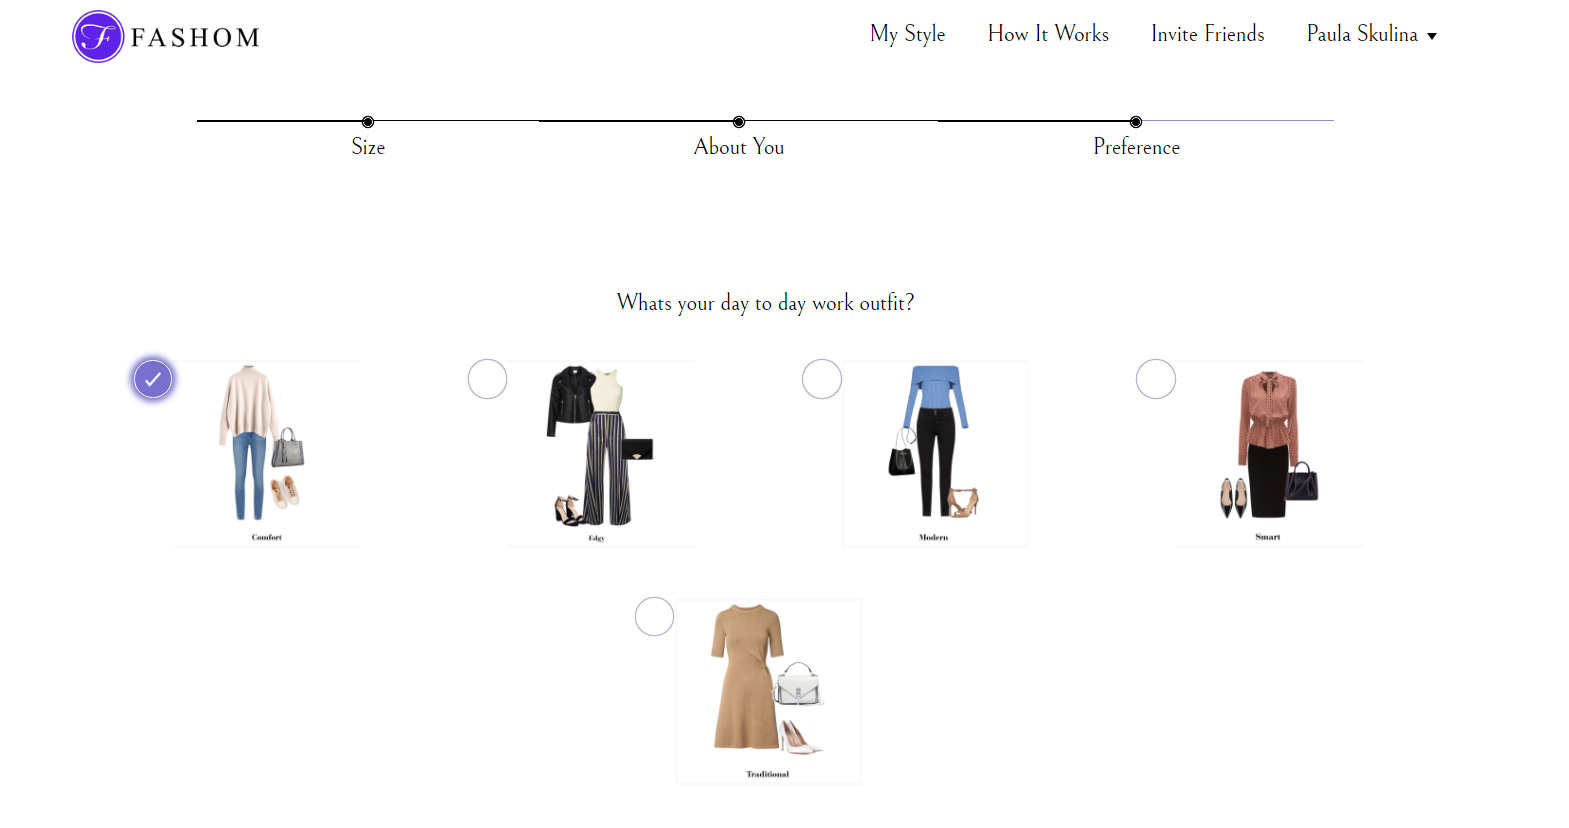 Filling out the style profile for Fashom styling service.